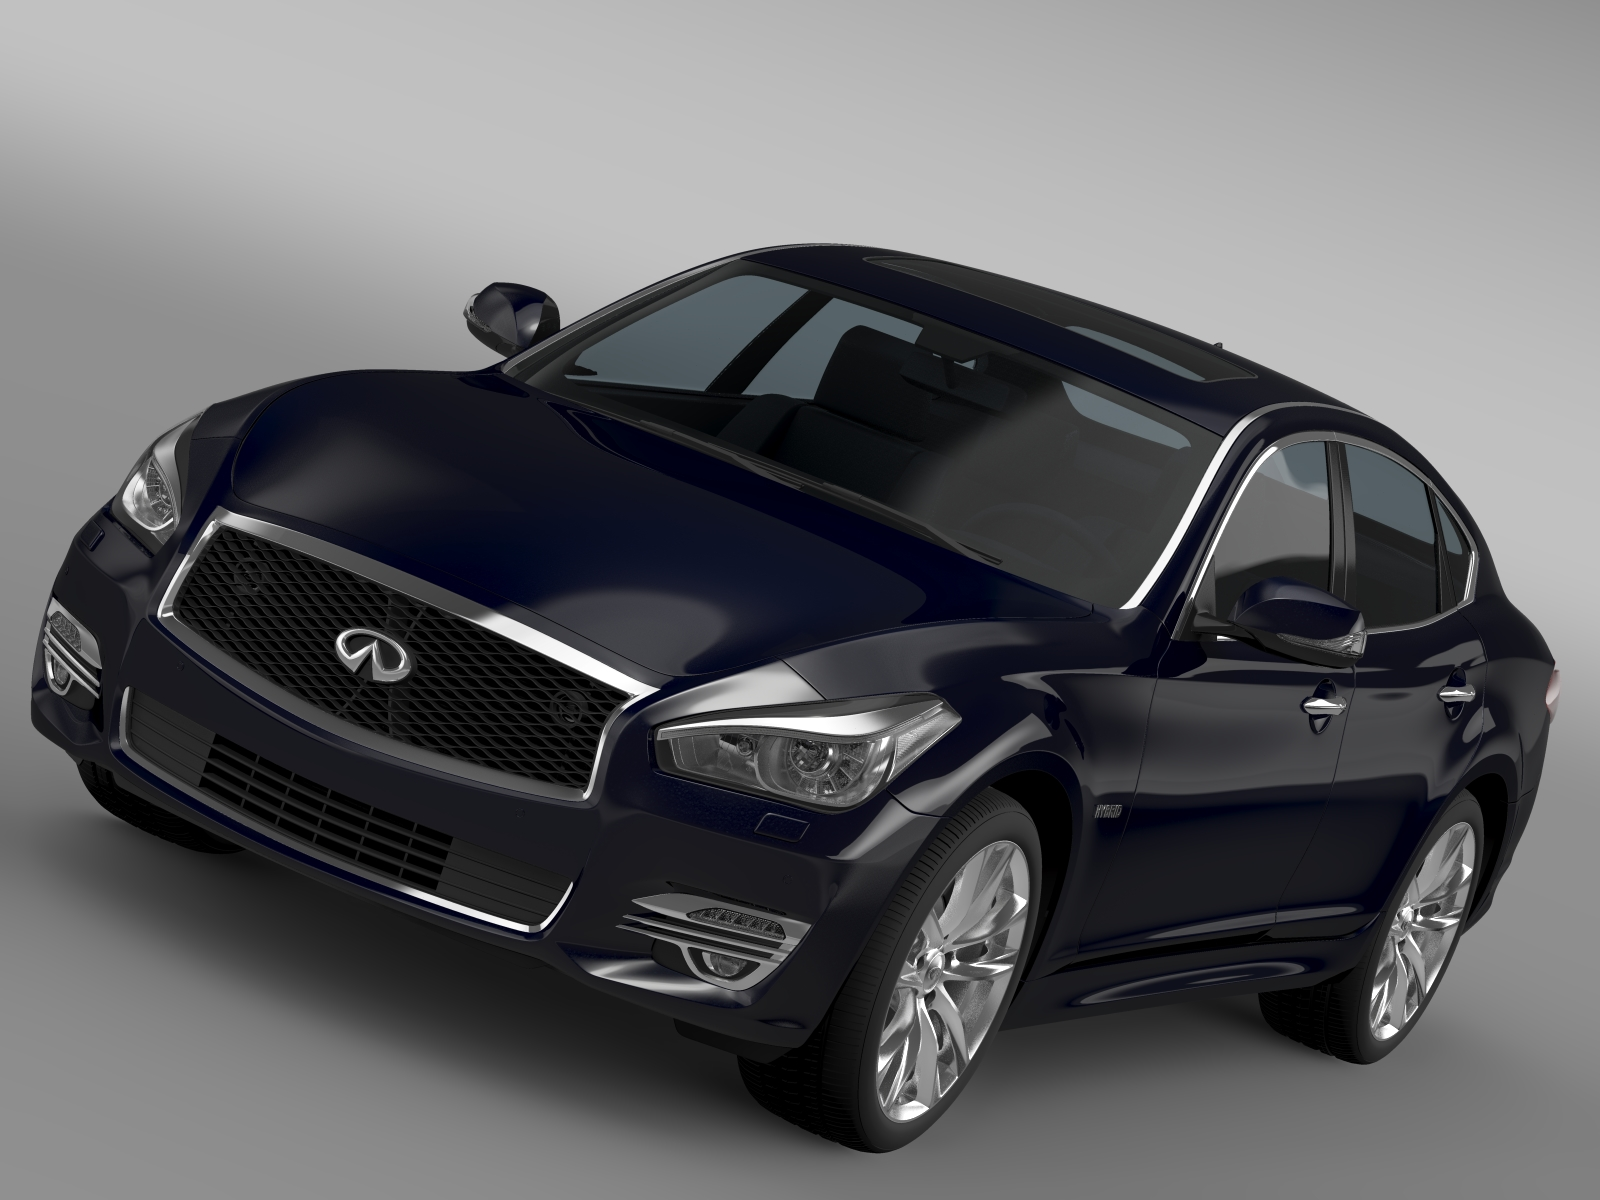 and hd wallpaper infiniti uk images infinity wallpapers pixel car sport wide